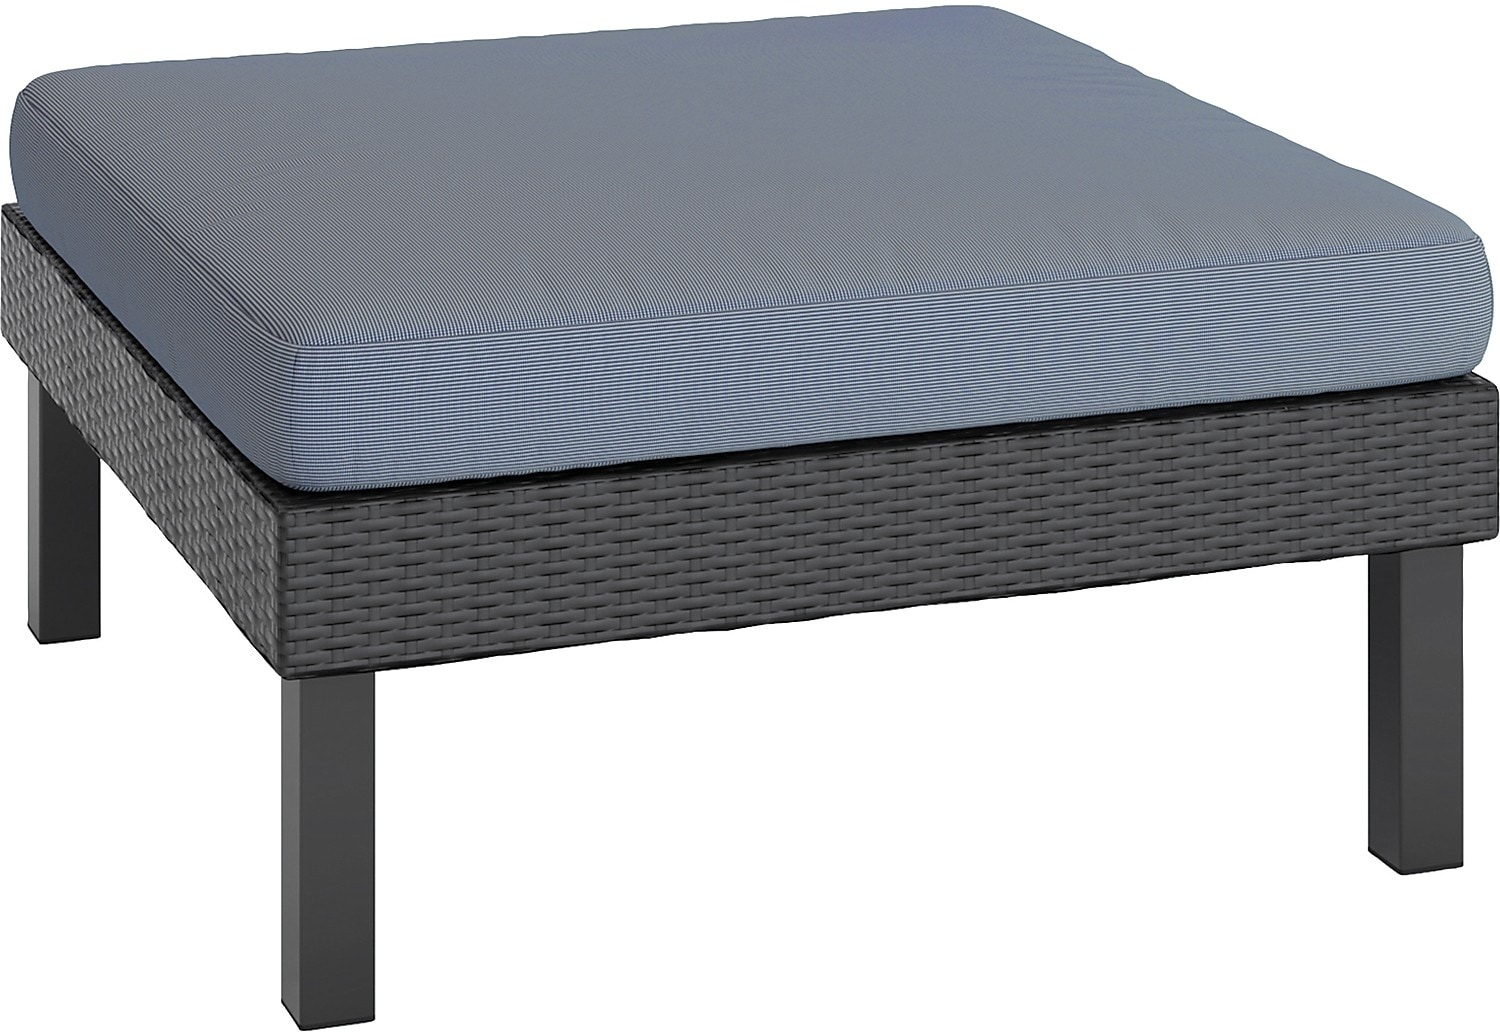 Outdoor Furniture - Oakland Patio Ottoman